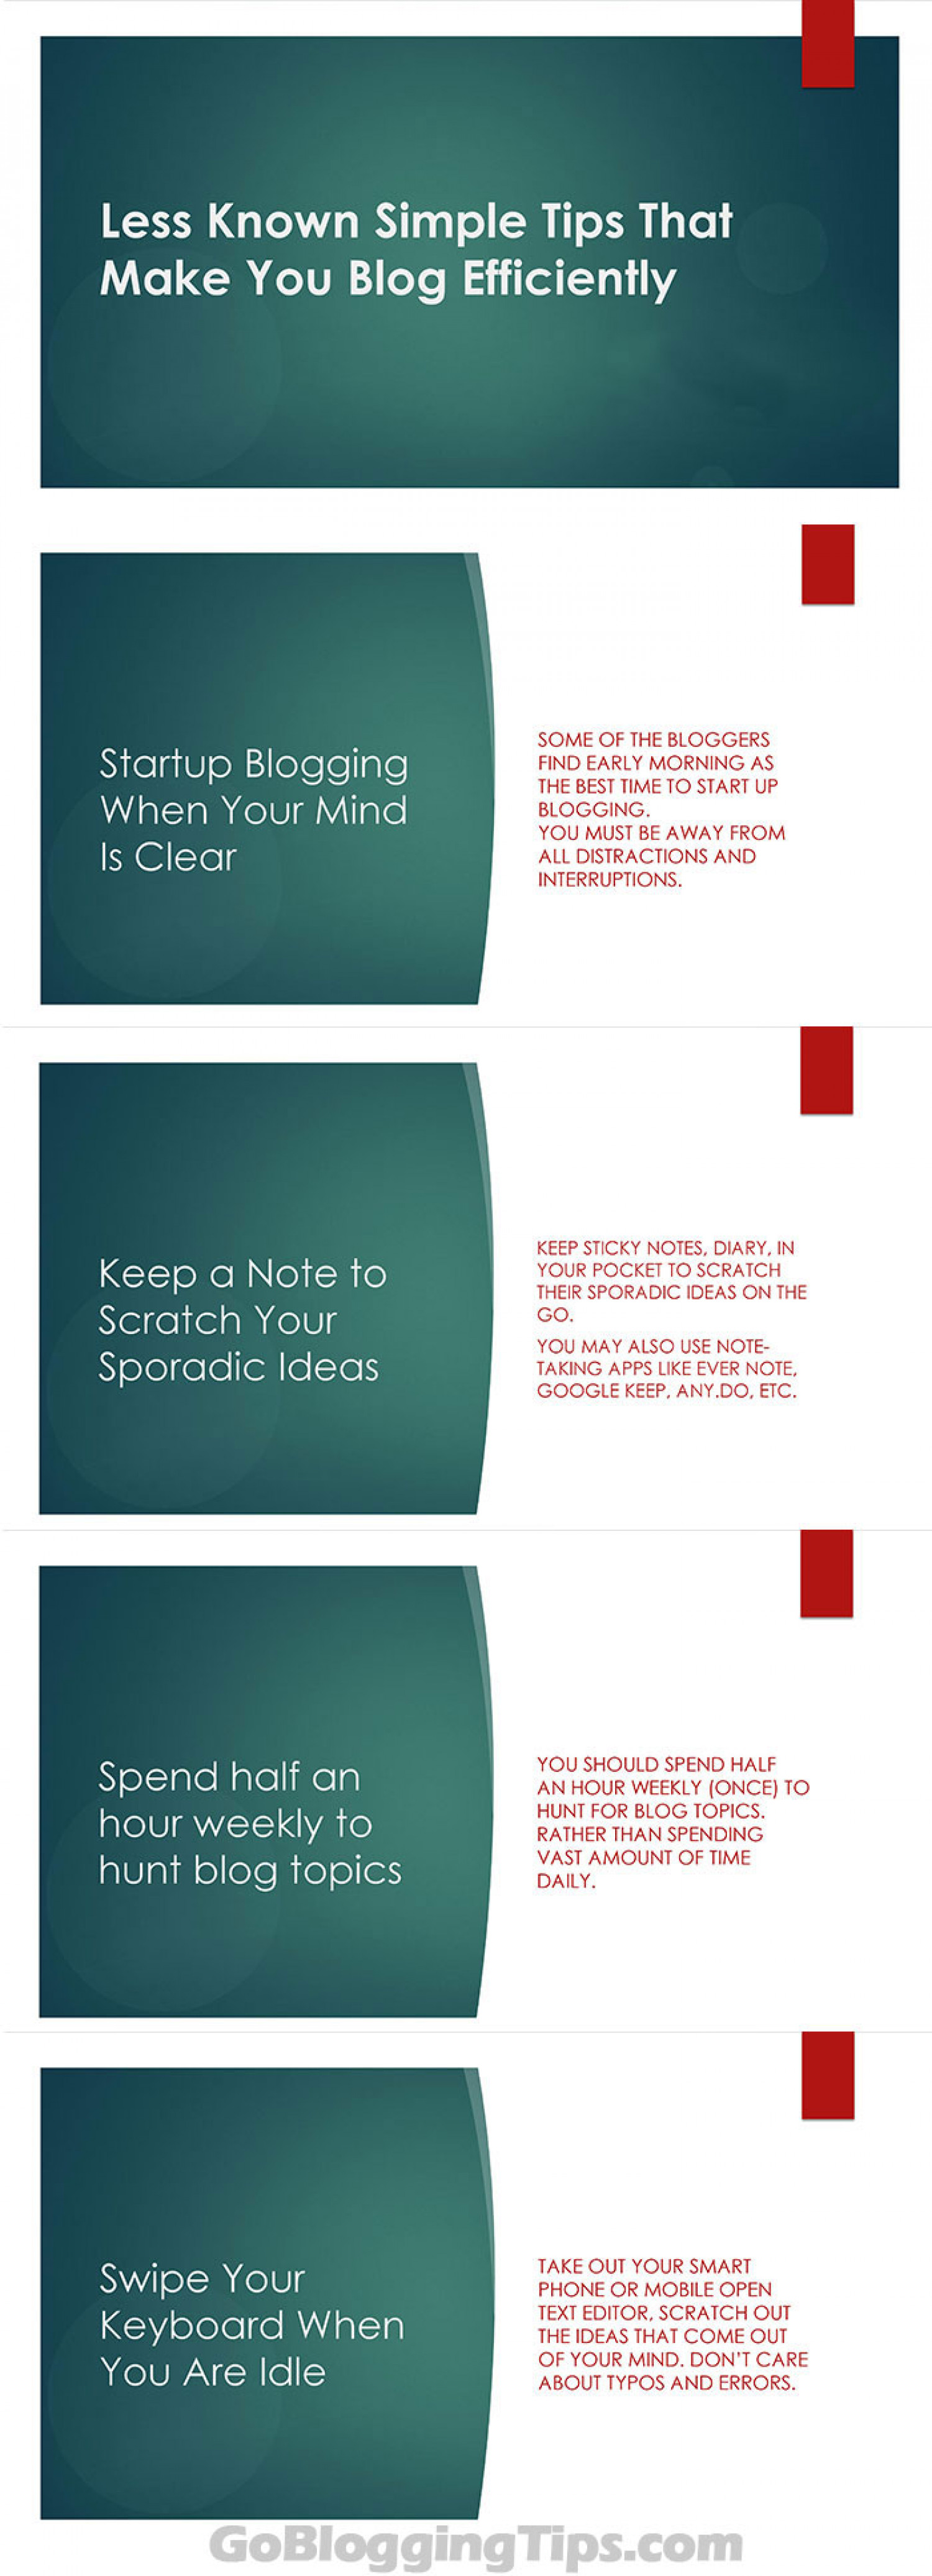 Tips to Make Your Blogging Effective Infographic